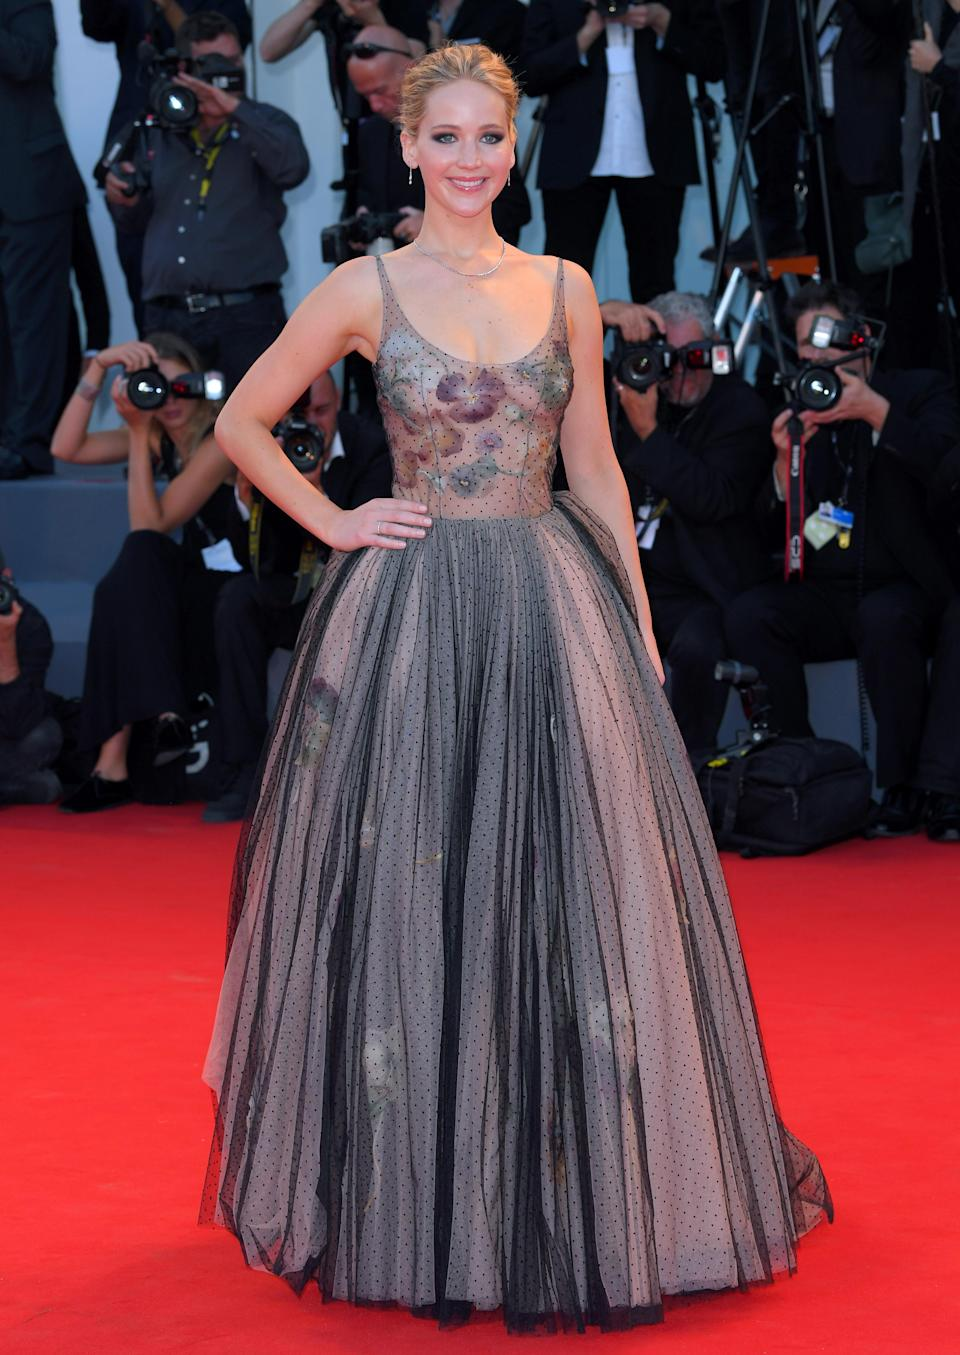 <p>Jennifer works Dior like no other, choosing one of the French house's sheer ballgowns to wow the crowds at the Venice Film Festival.<br><i>[Photo: Rex]</i> </p>